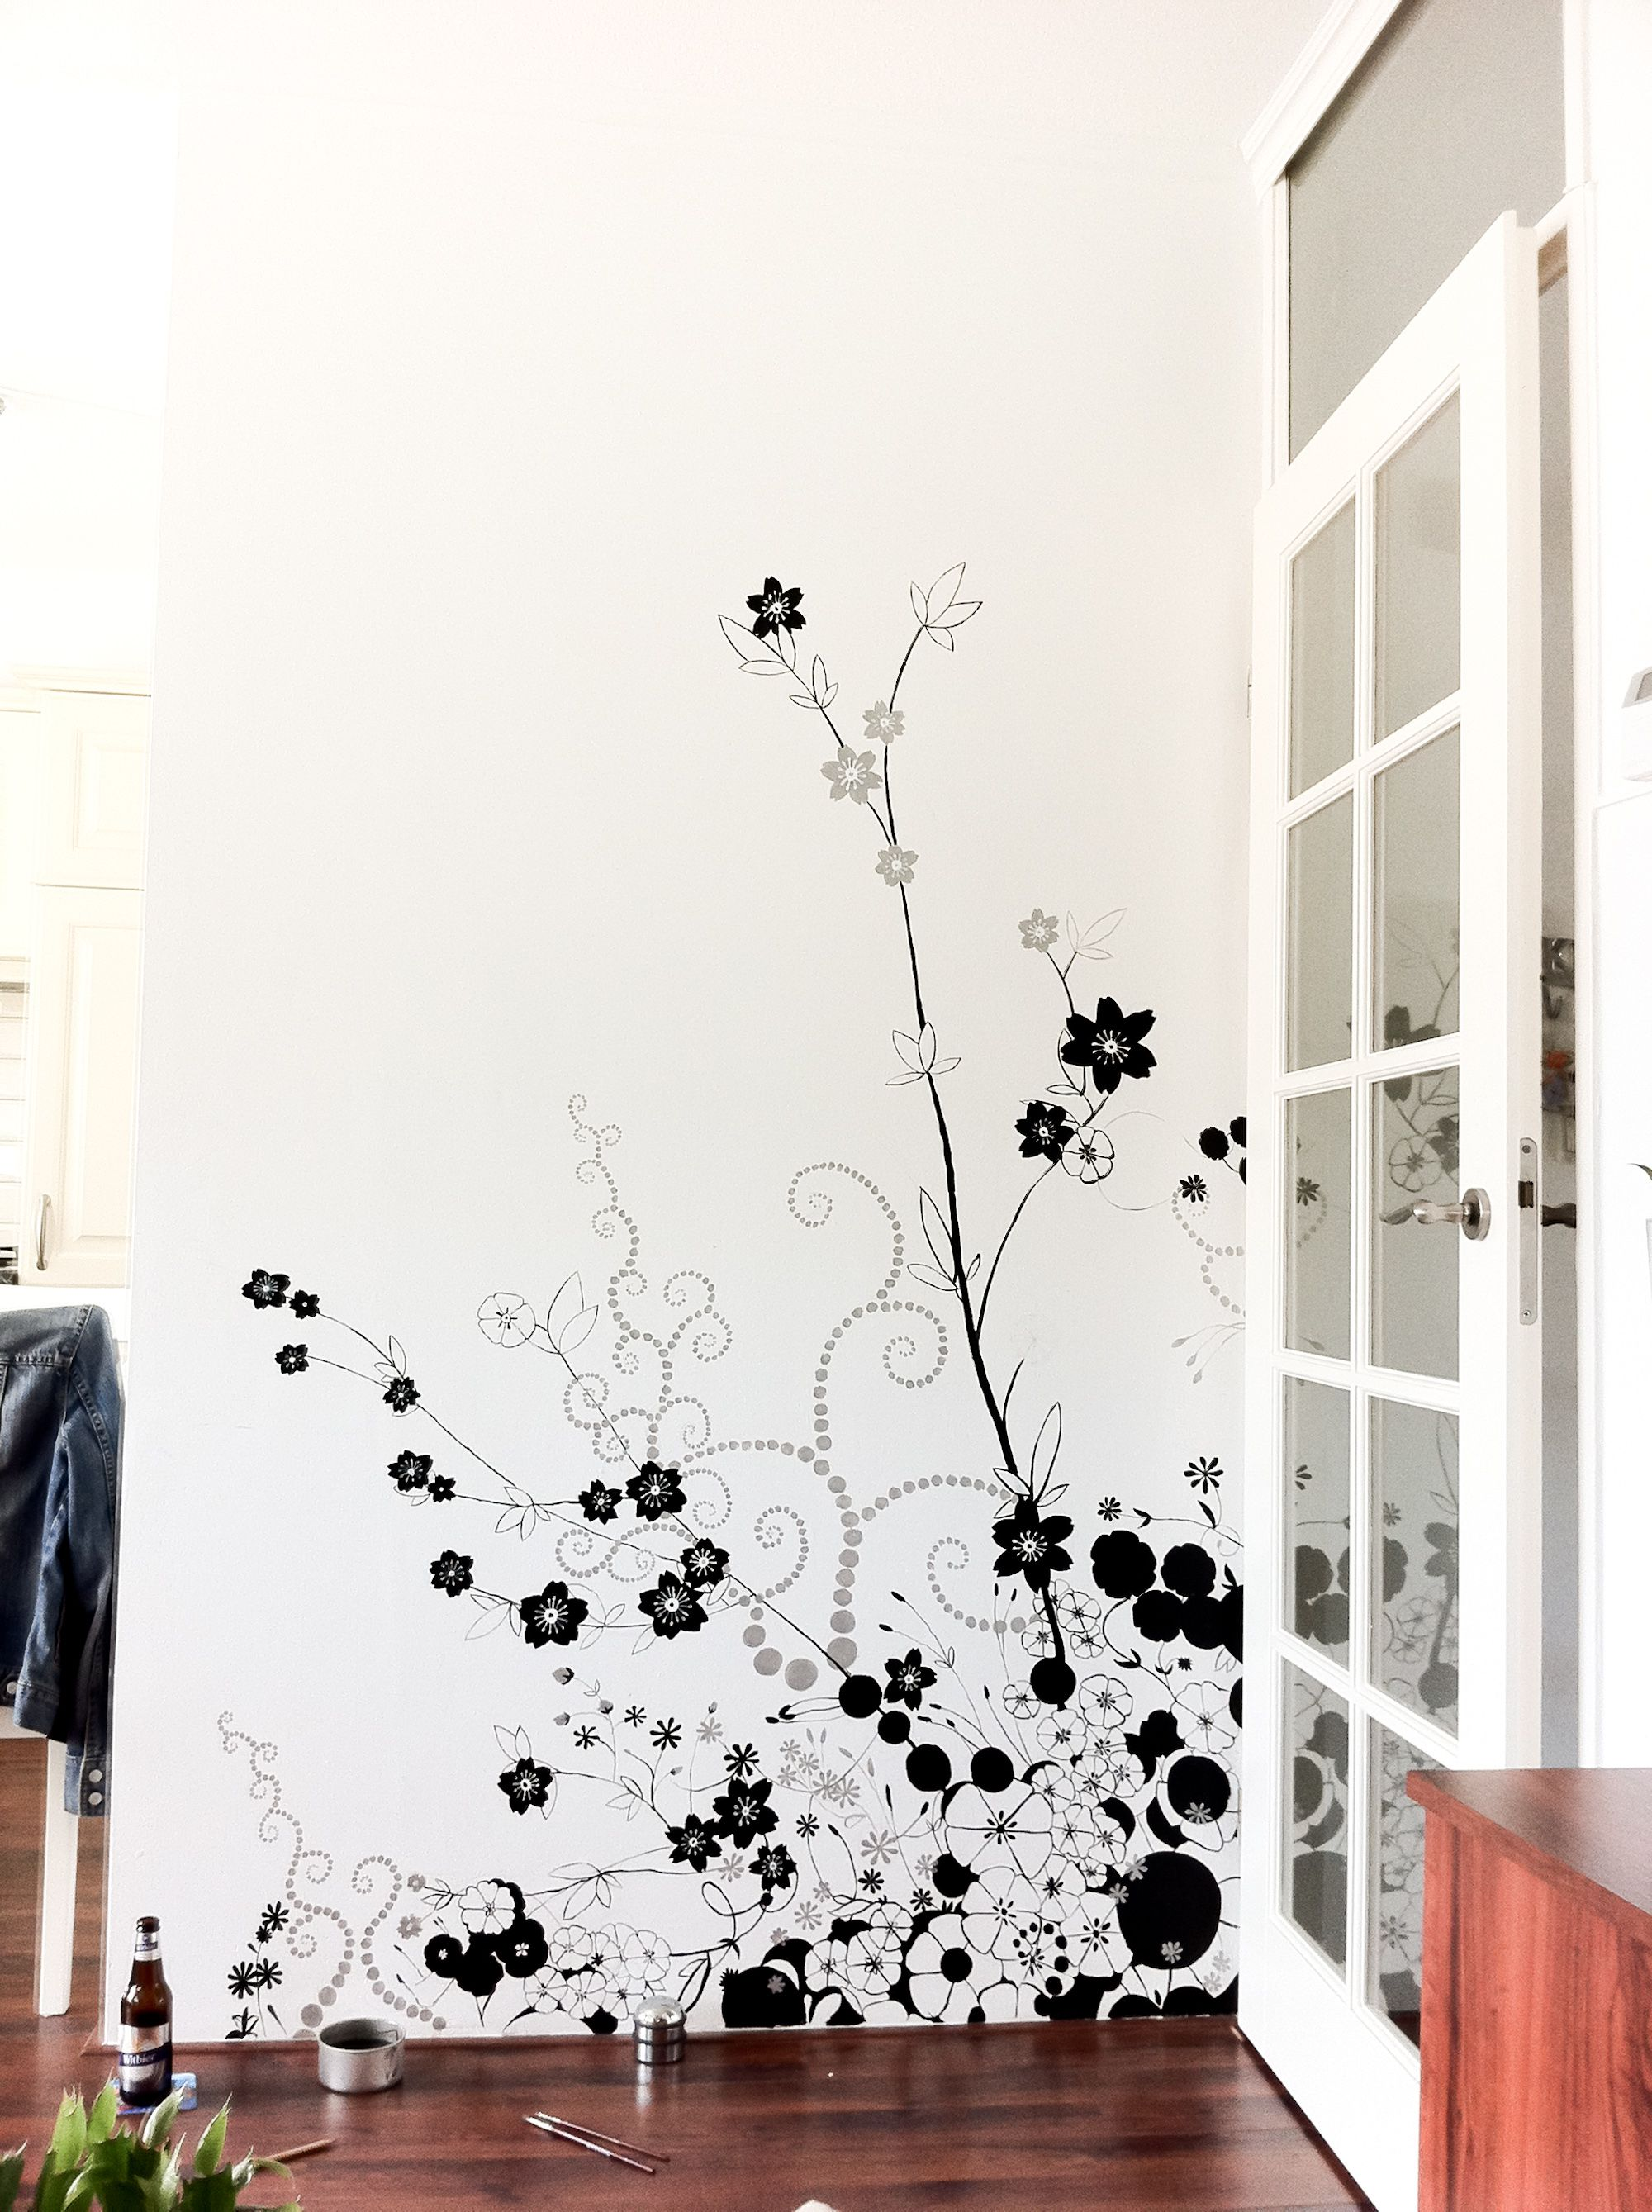 Bedroom paint designs black and white - Home Interior Design Techniques Of Modern Creative Wall Painting Ideas Brwon Chest Of Storage Drawer Black Flower Of Mural On White Color Wall Painting